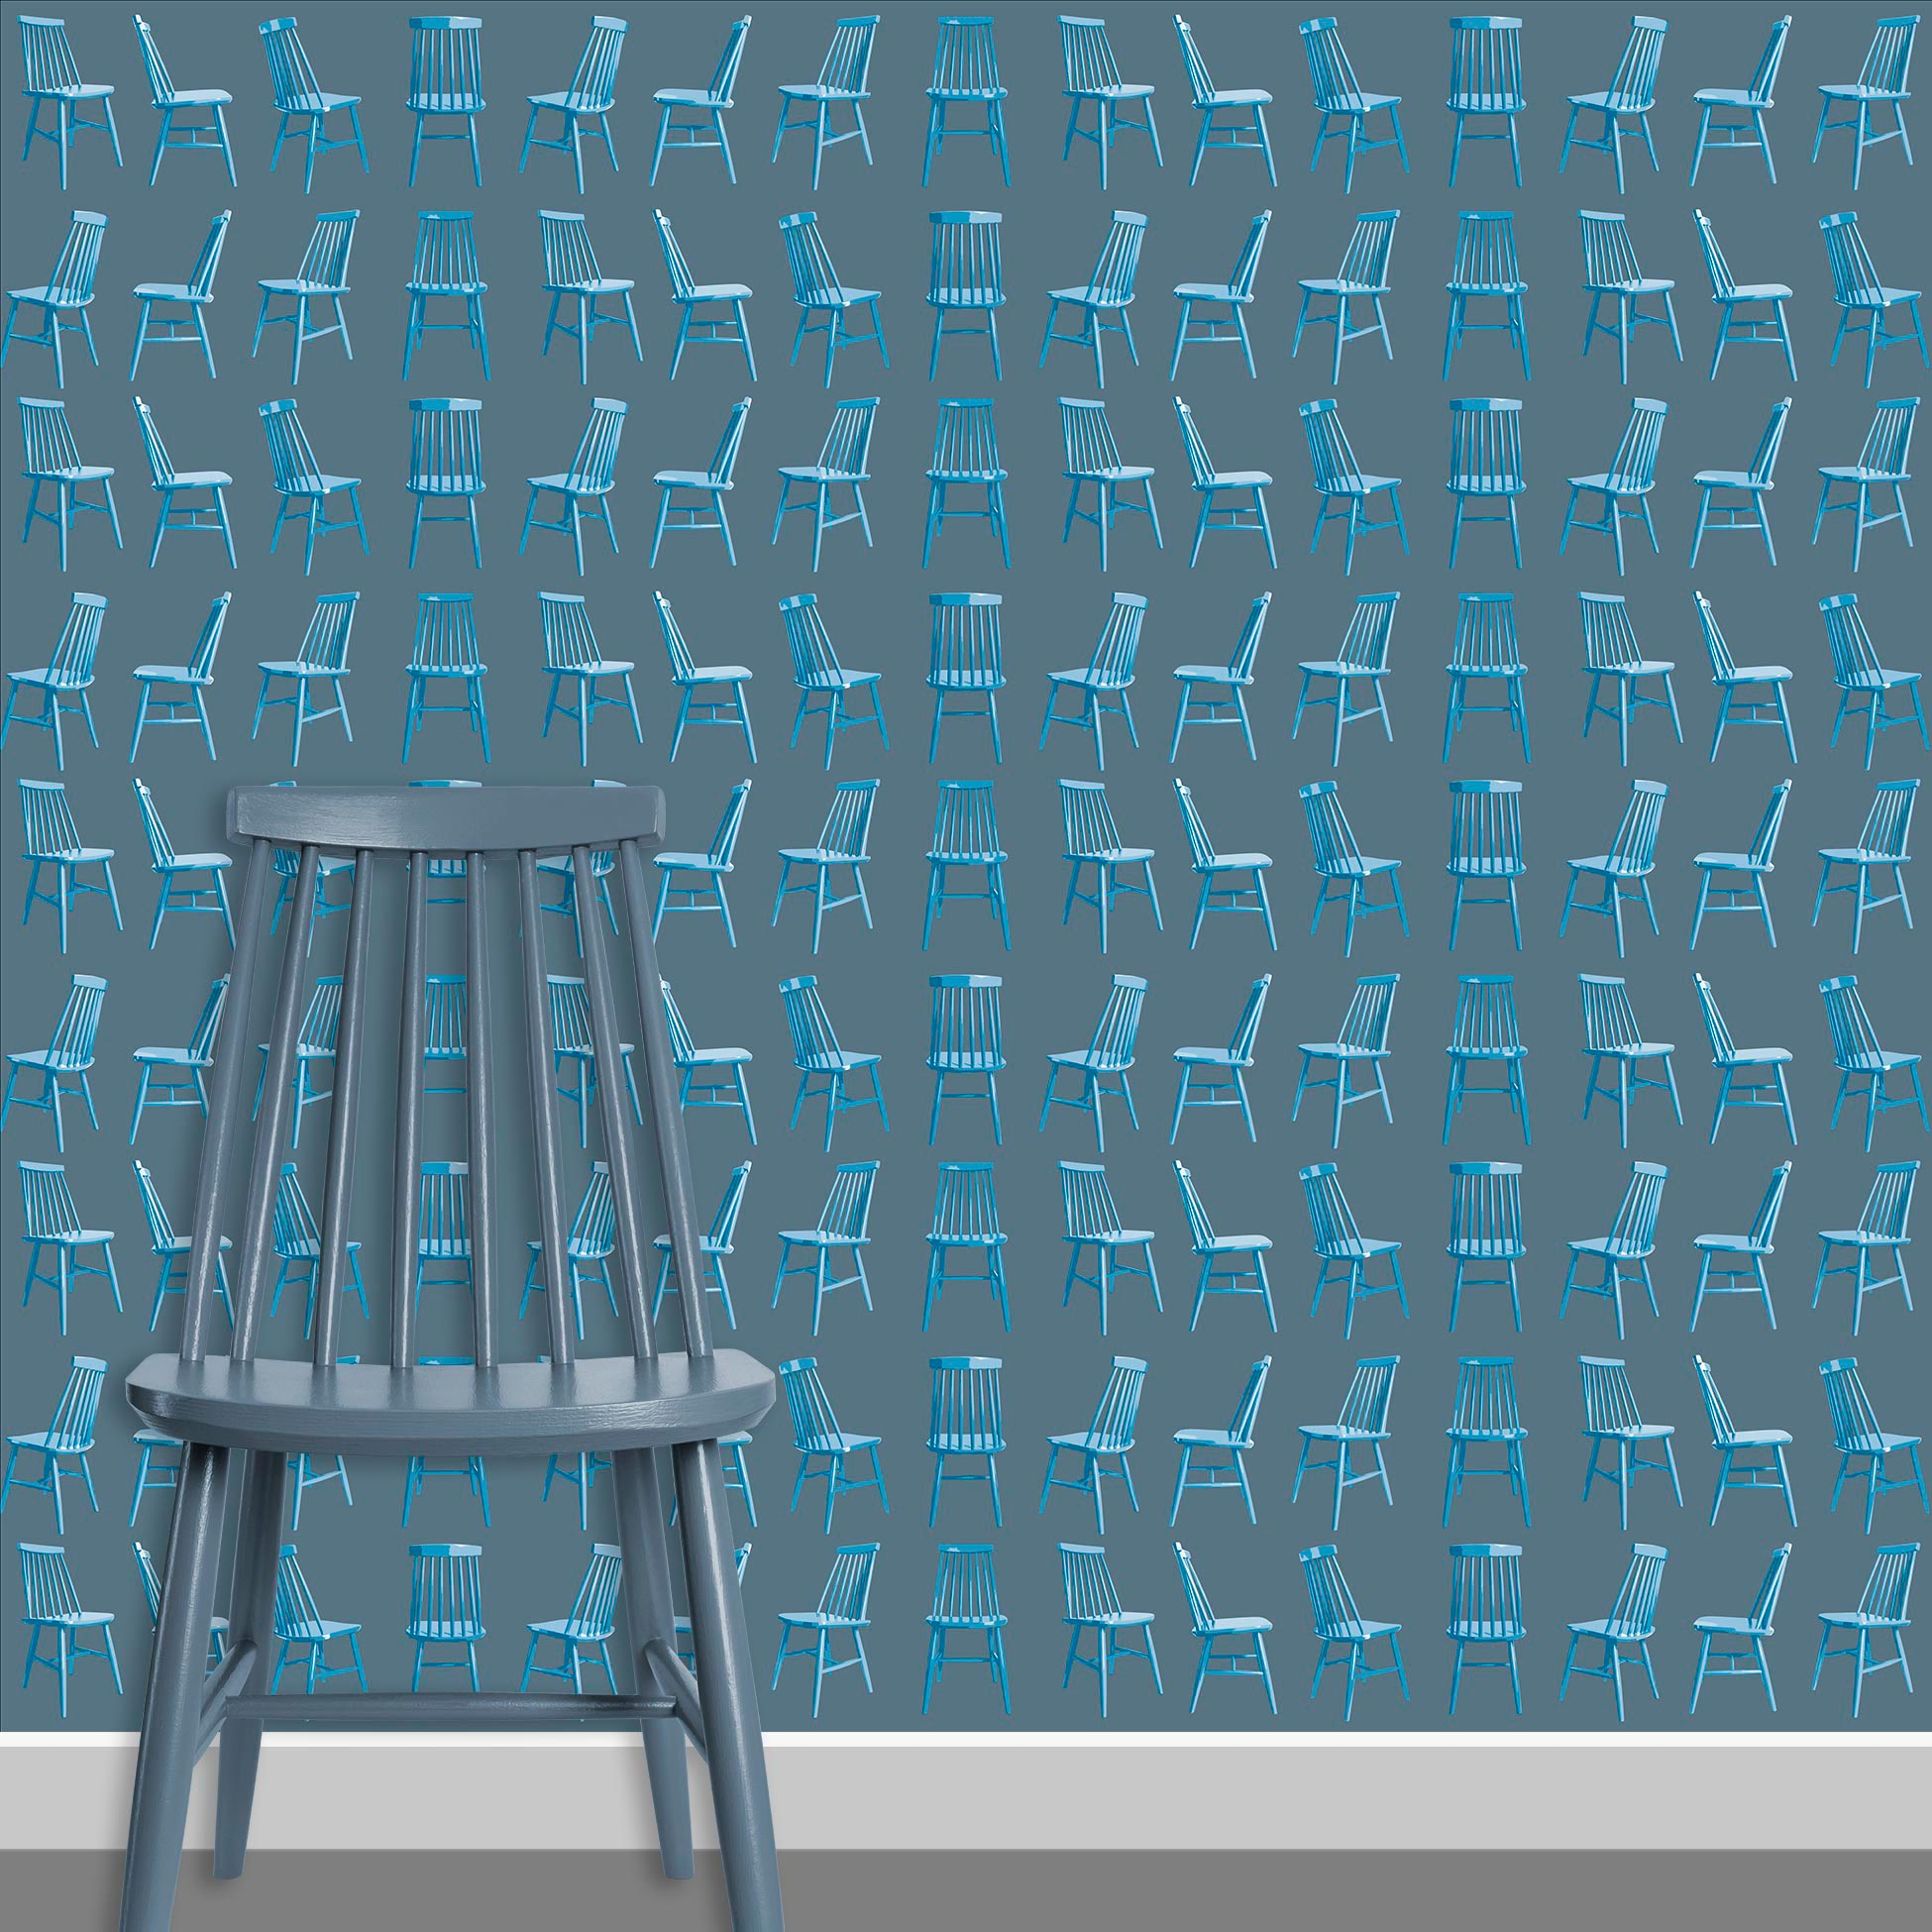 Contact Page Square - Mid Century Modern Chairs Pattern Design 5